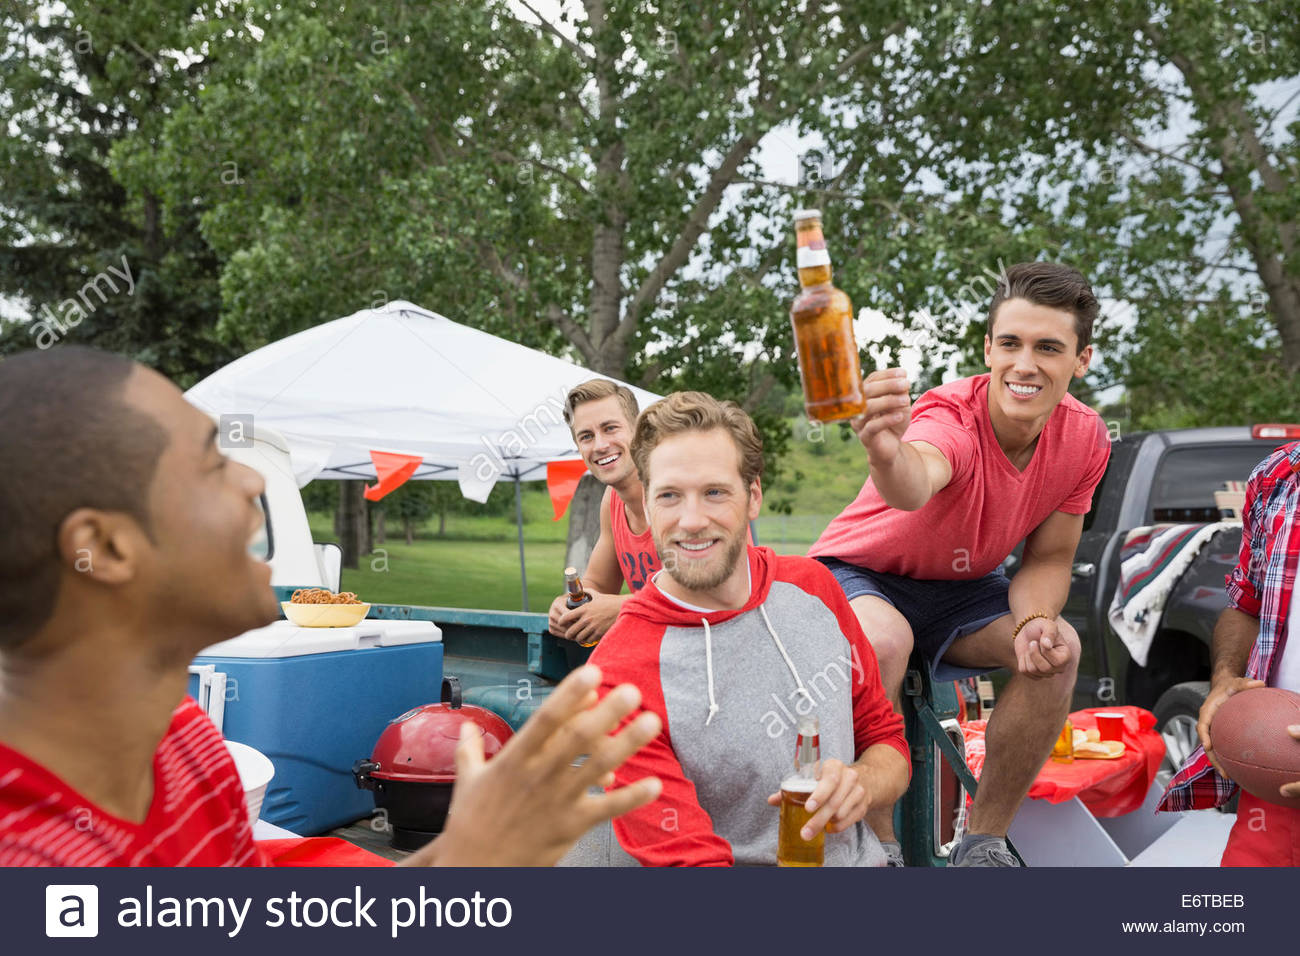 Men drinking beer at tailgate barbecue in field - Stock Image